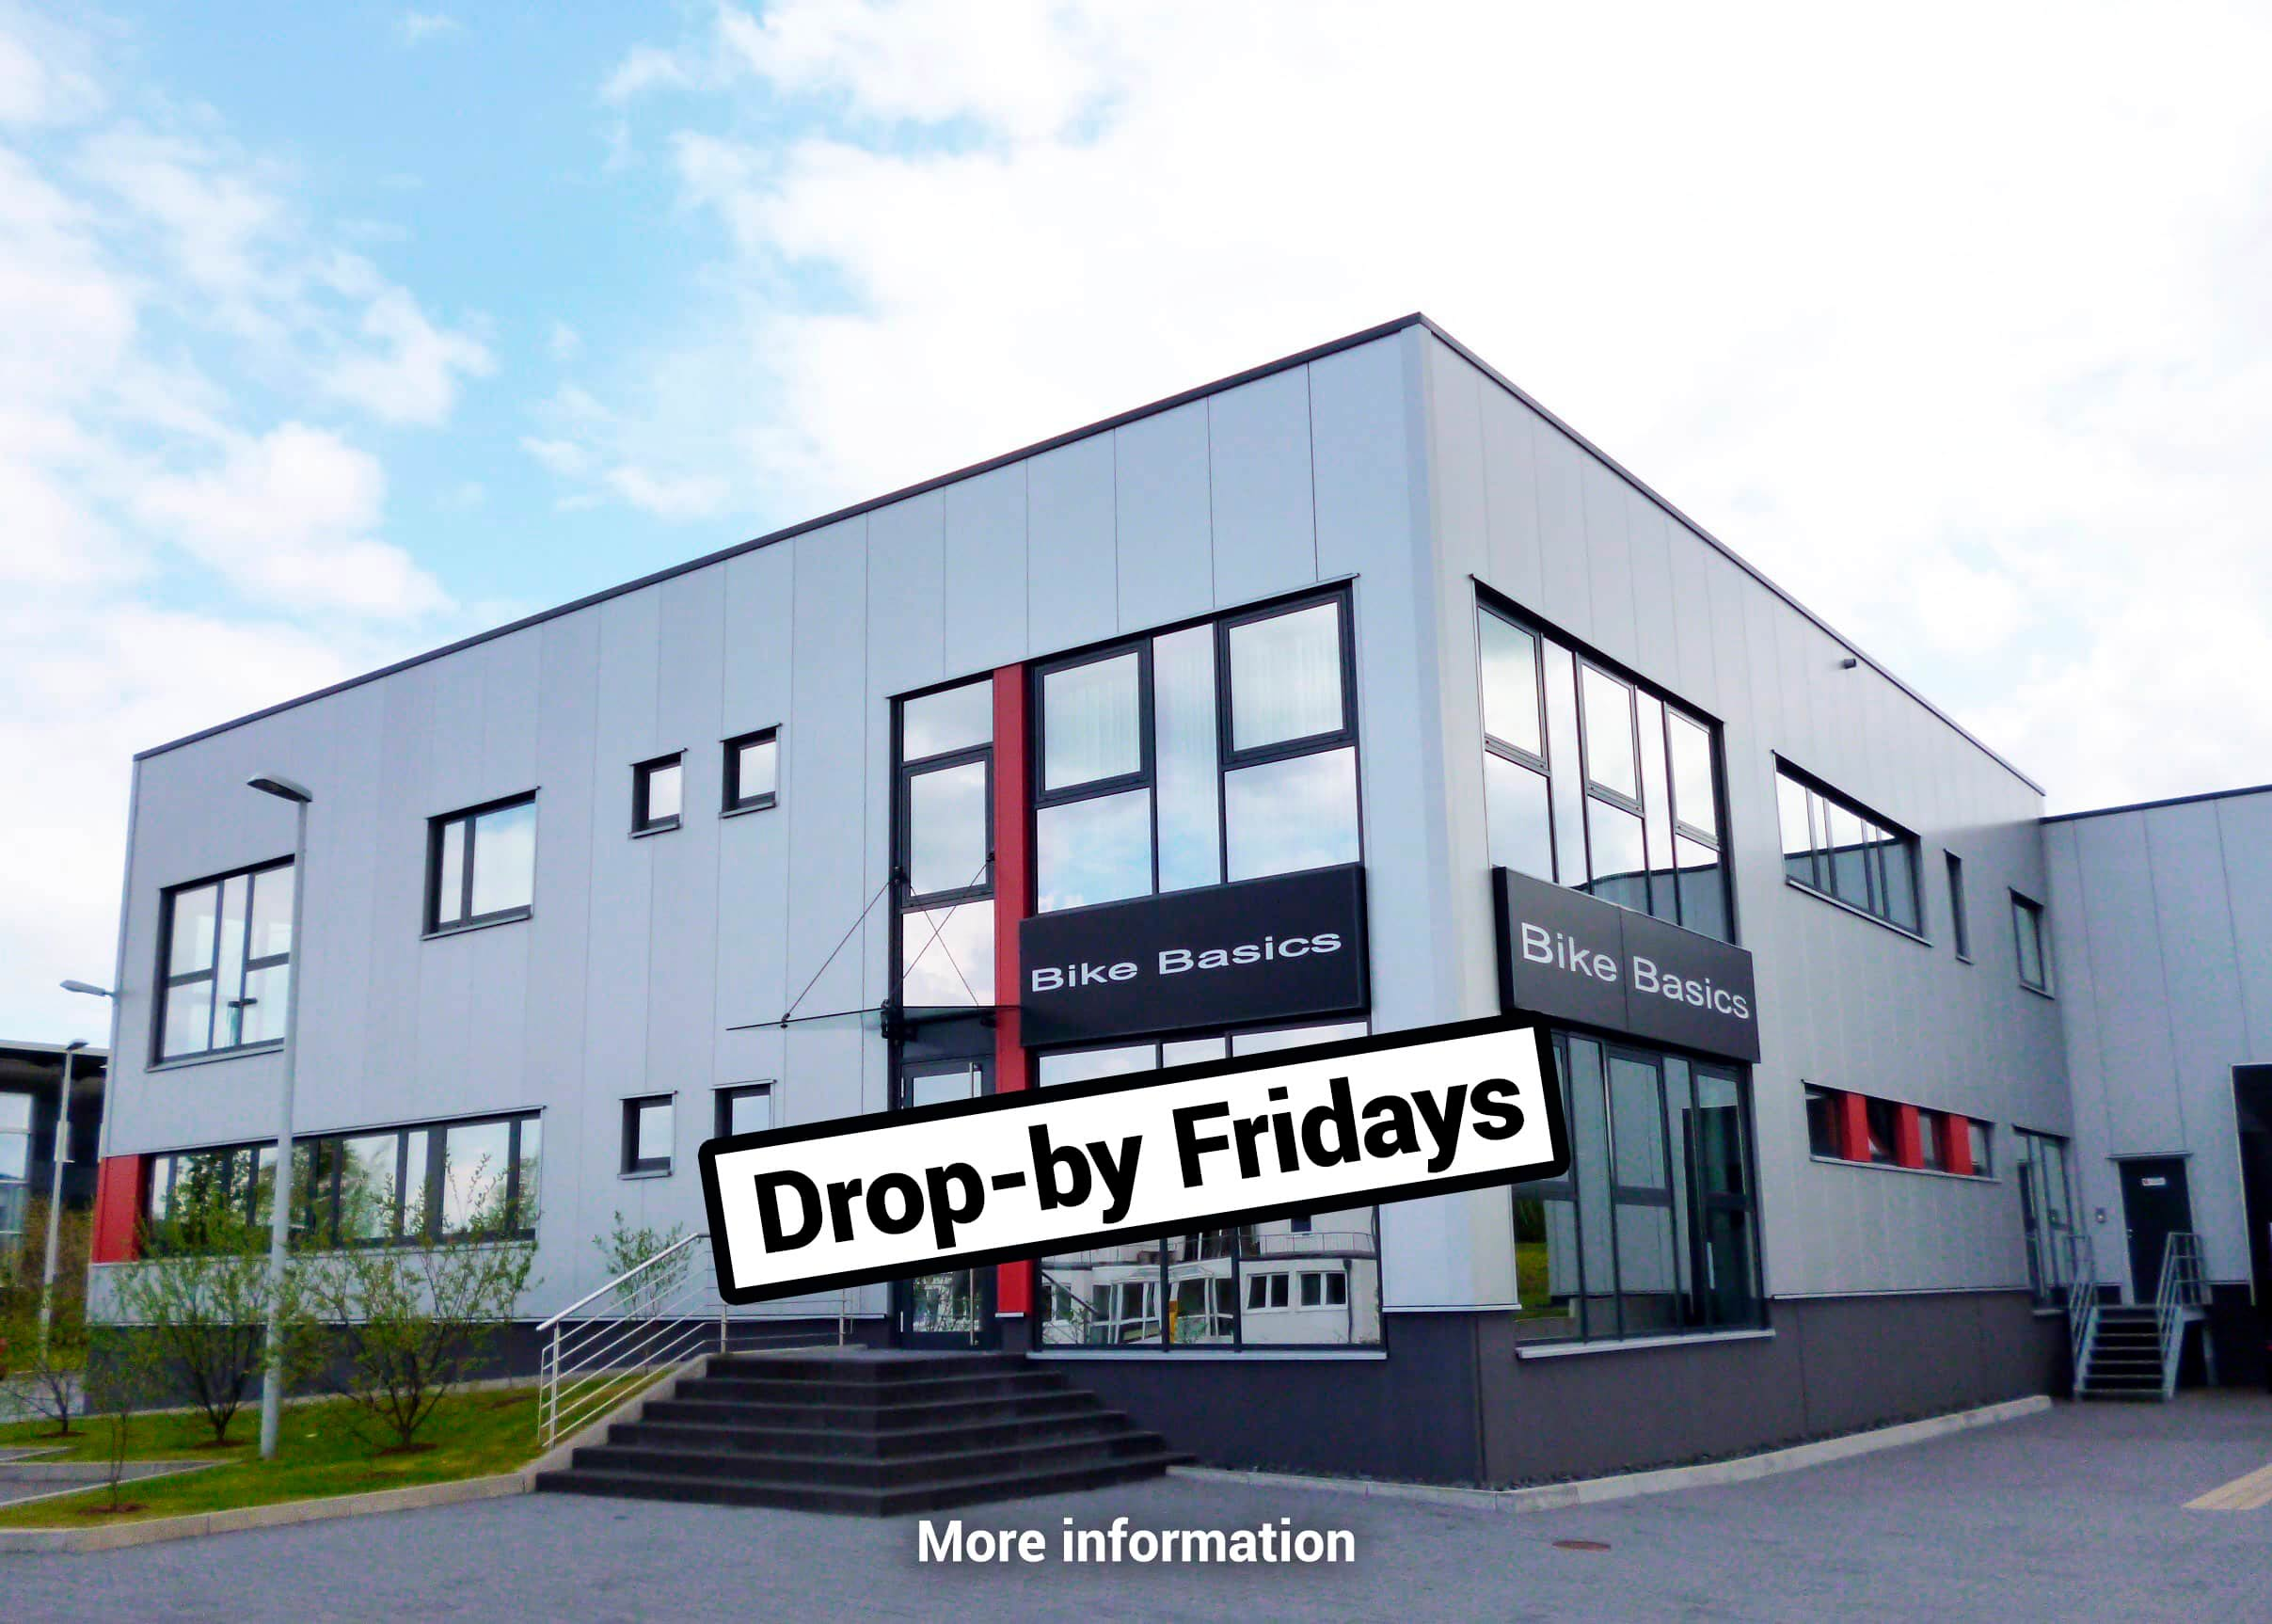 Drop-by Fridays